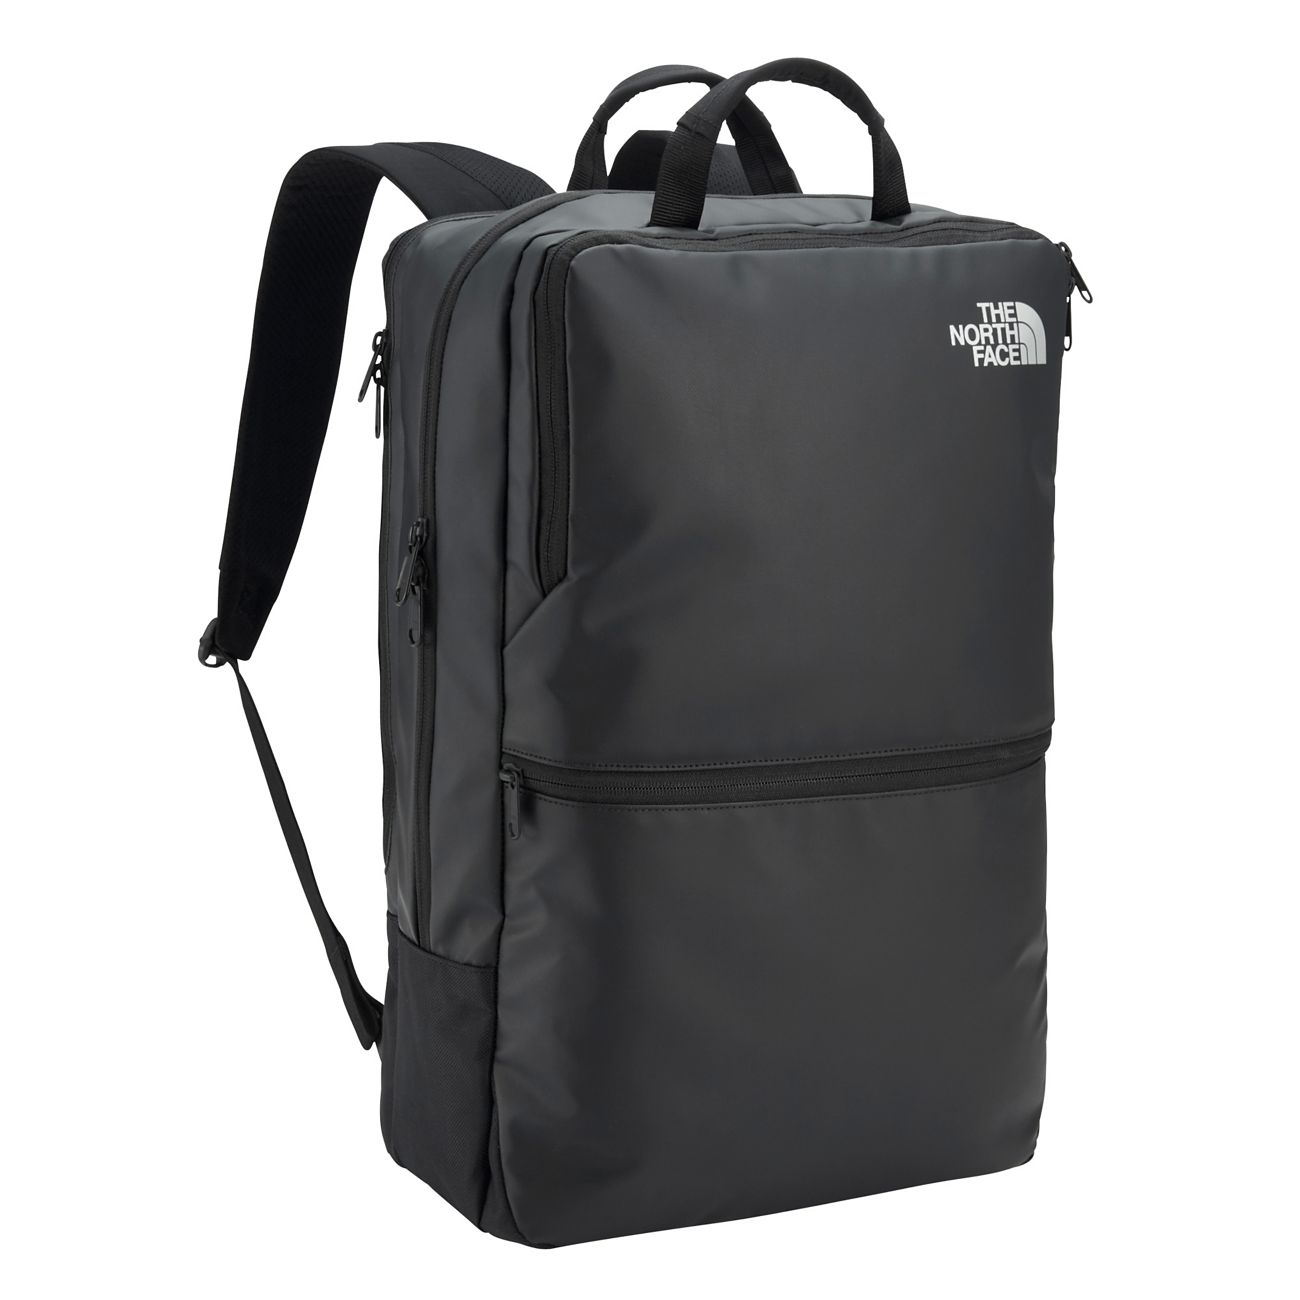 New BITE 25 Backpack by The North Face